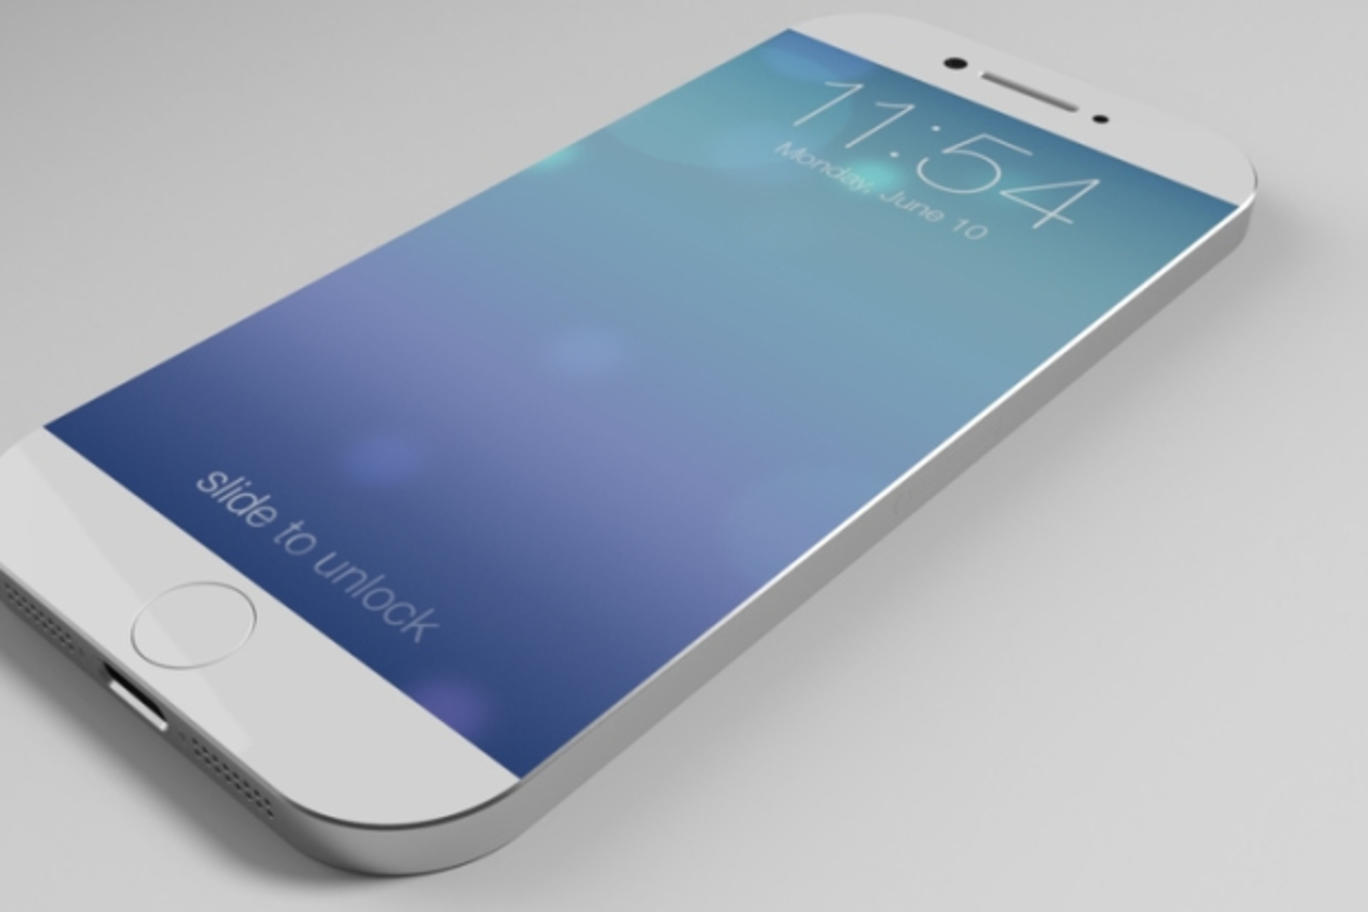 iPhone 6 Concept August 26, 2014